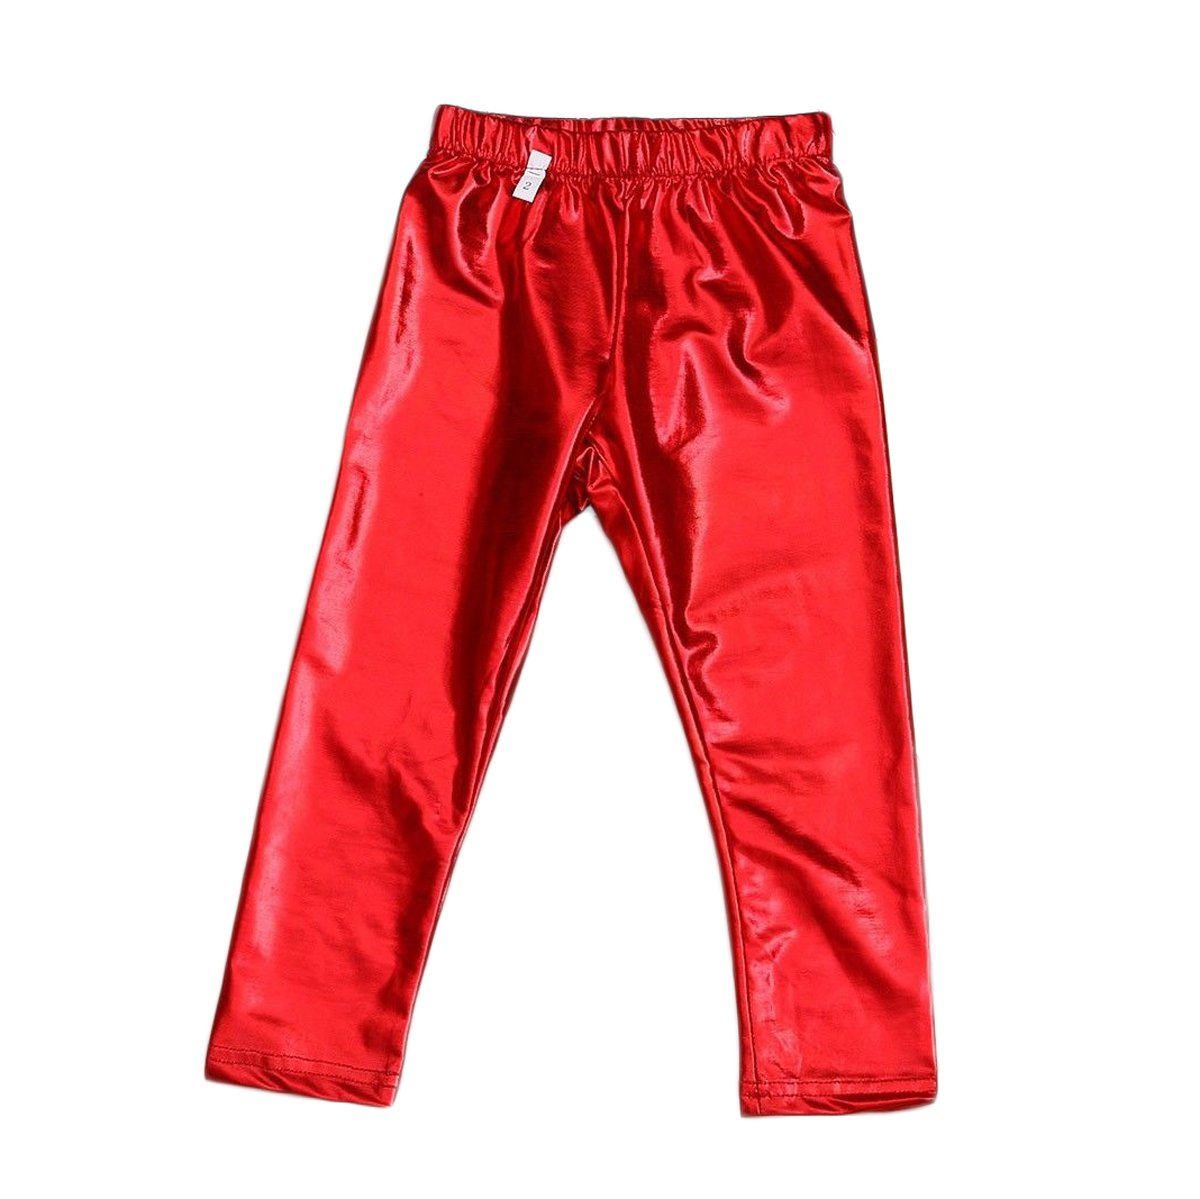 CHRISTYLE 1-9Y Fashion Baby Kids Girl Meryl Shiny Solid Skinny Leggings Pants Trousers